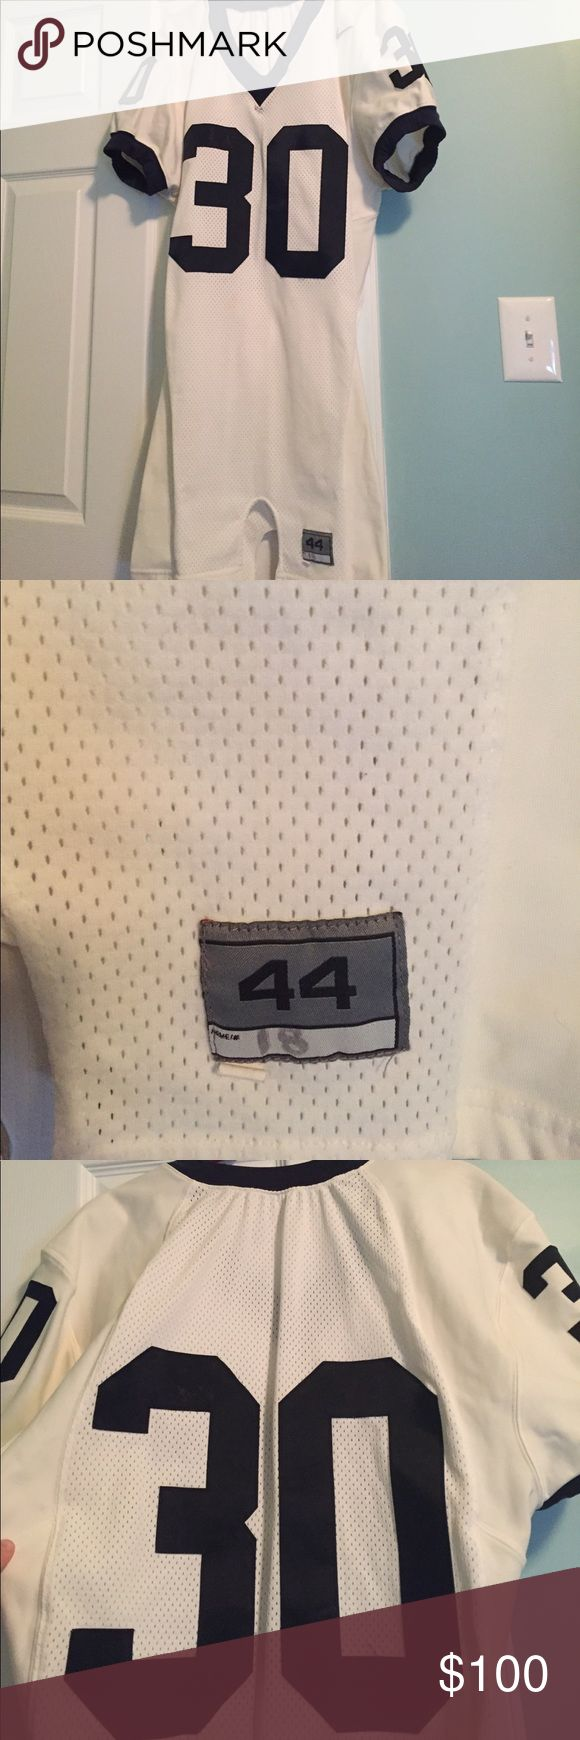 Penn State Game worn jersey #30 Nike Game worn condition #30 game day jersey, purchased from the school. Tag at bottom says: 44 name 18 /LB. smoke free pet friendly home. Nike Other